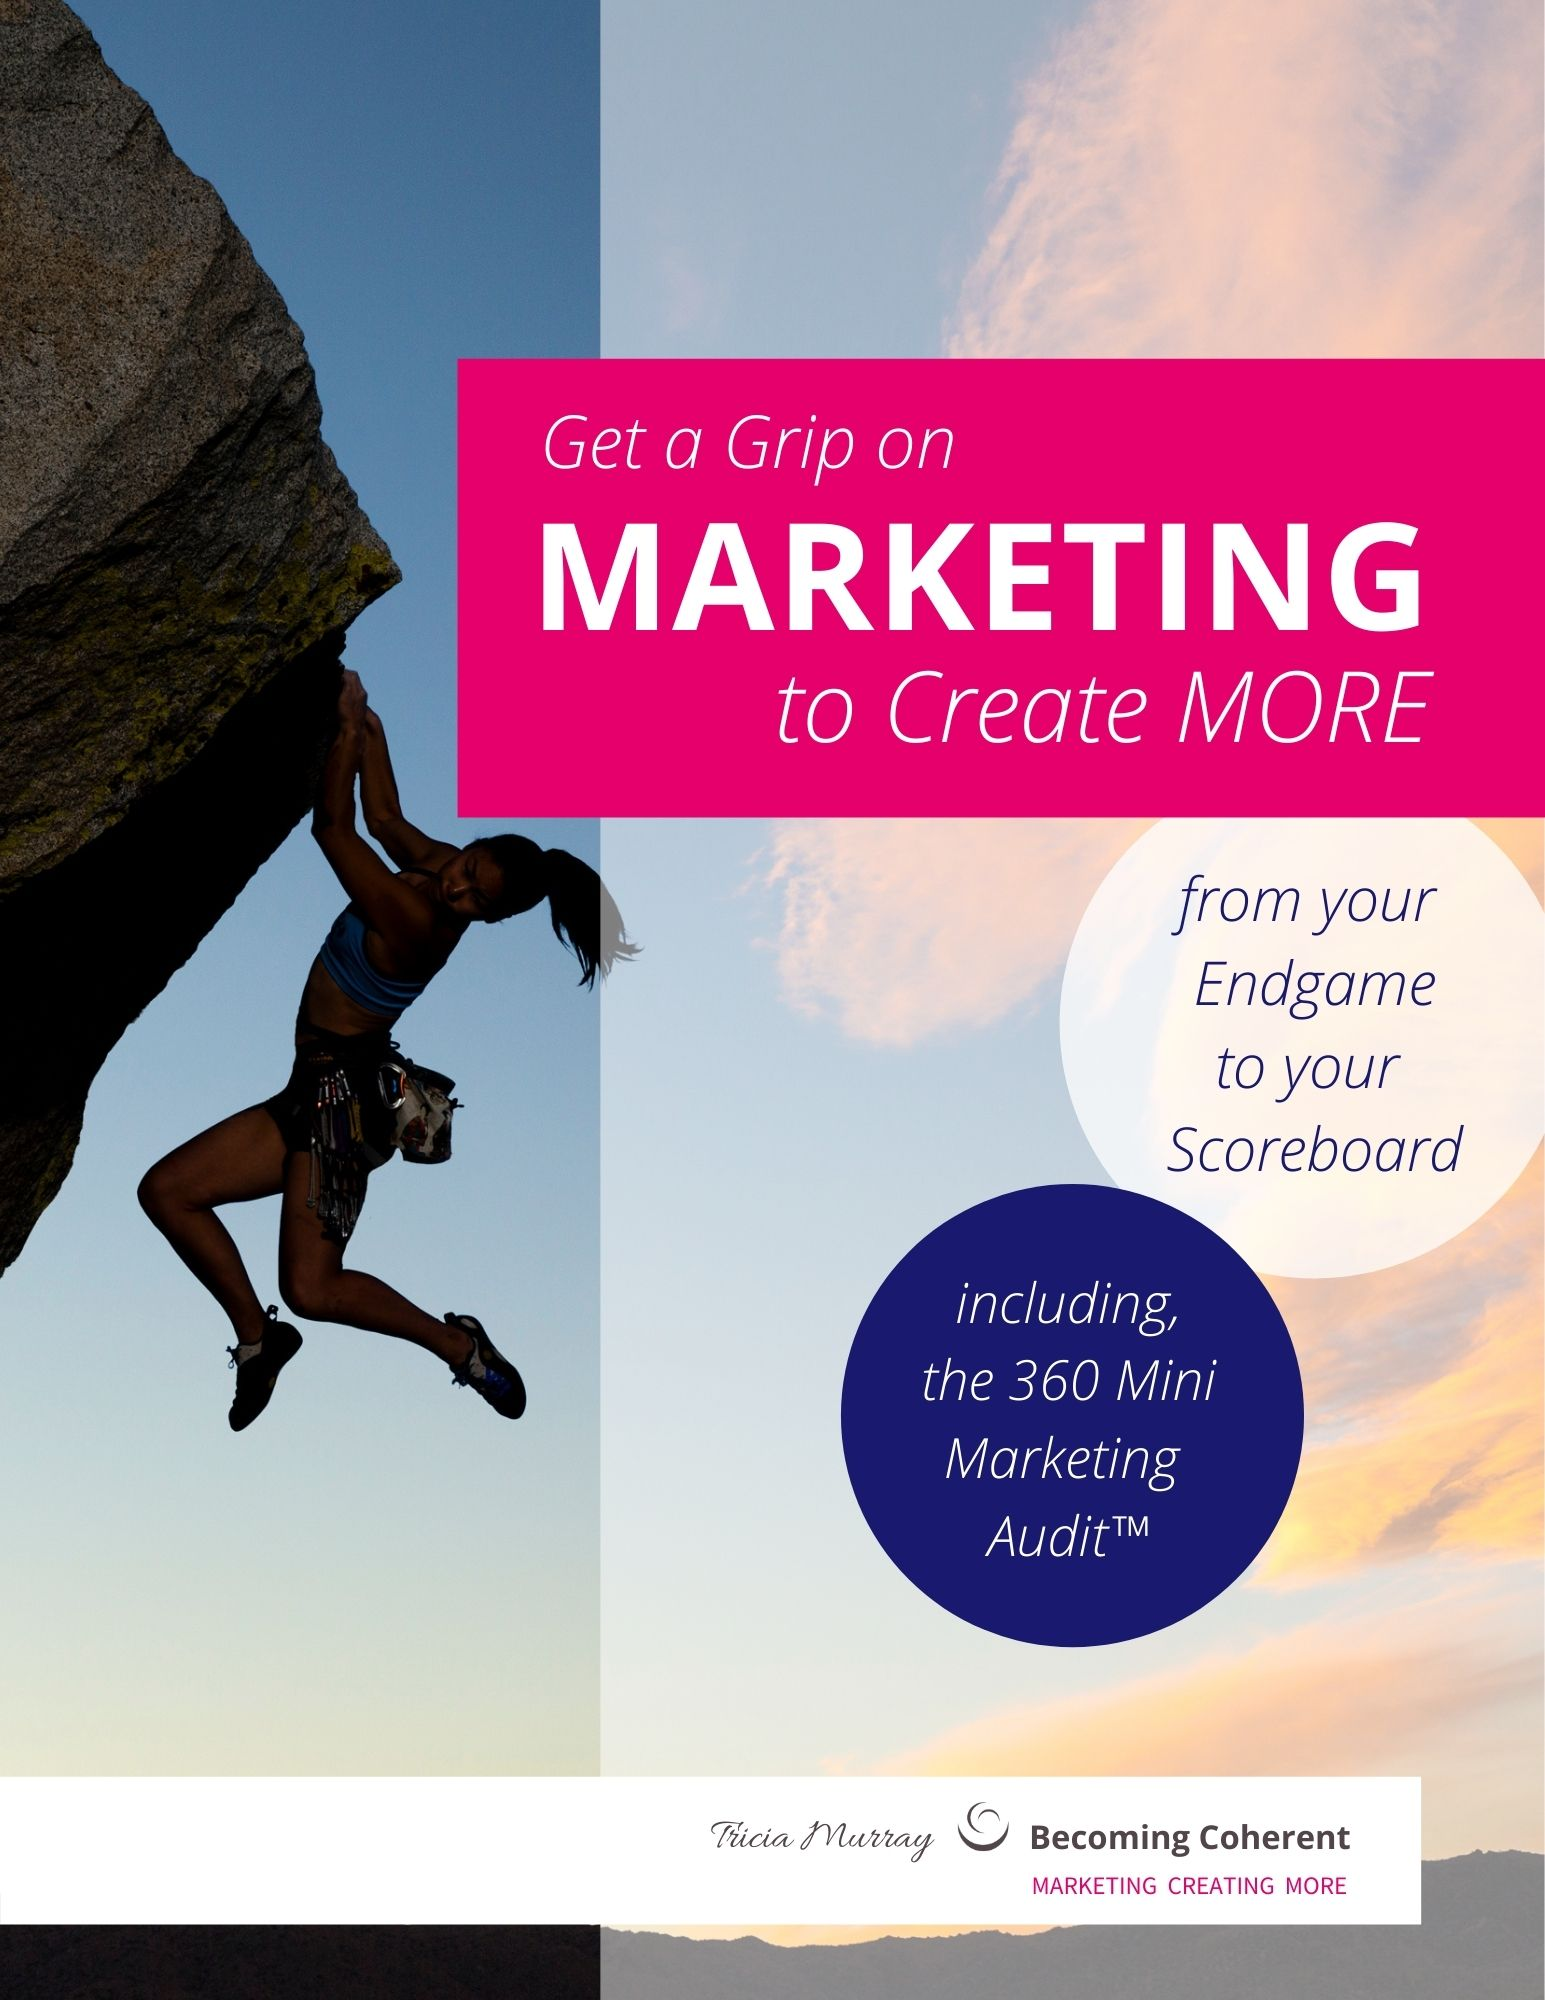 Get a Grip on Marketing to Create More | 360 Mini Marketing Audit | Tricia Murray, Becoming Coherent